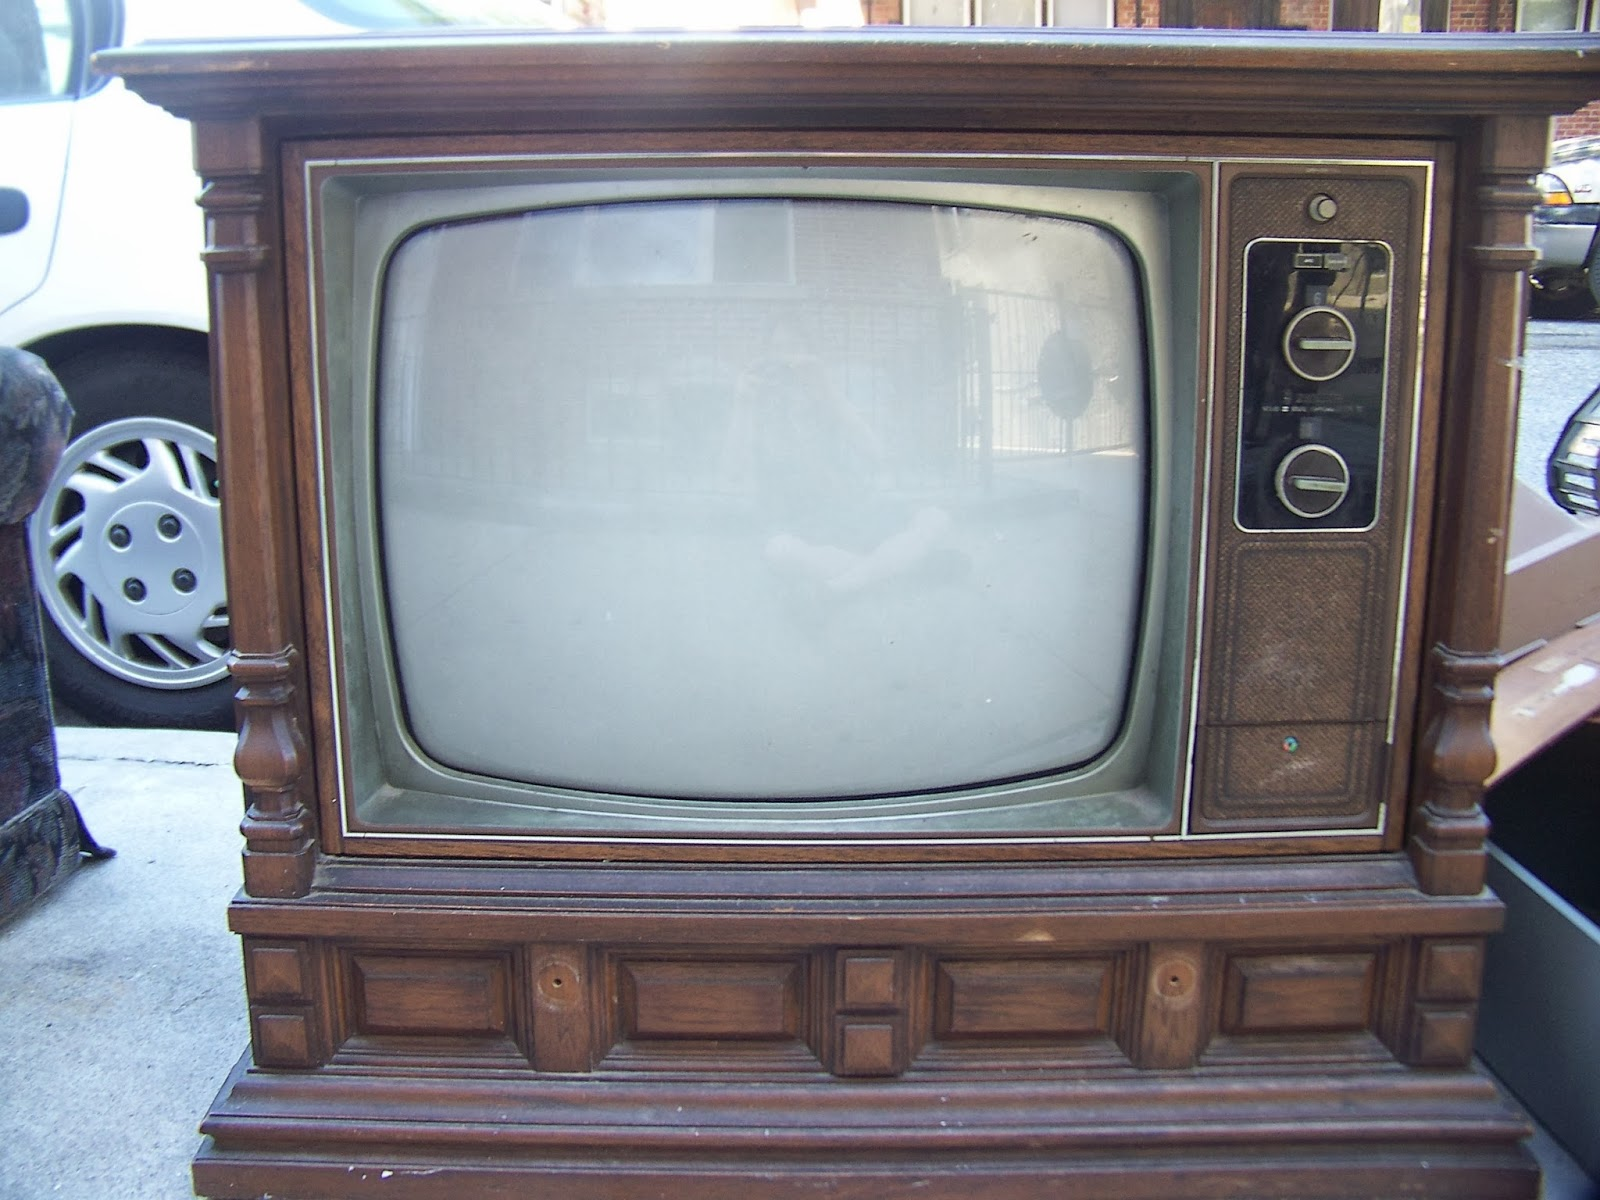 Big Zenith Tv: Vintage 1959 Zenith Space Command 400